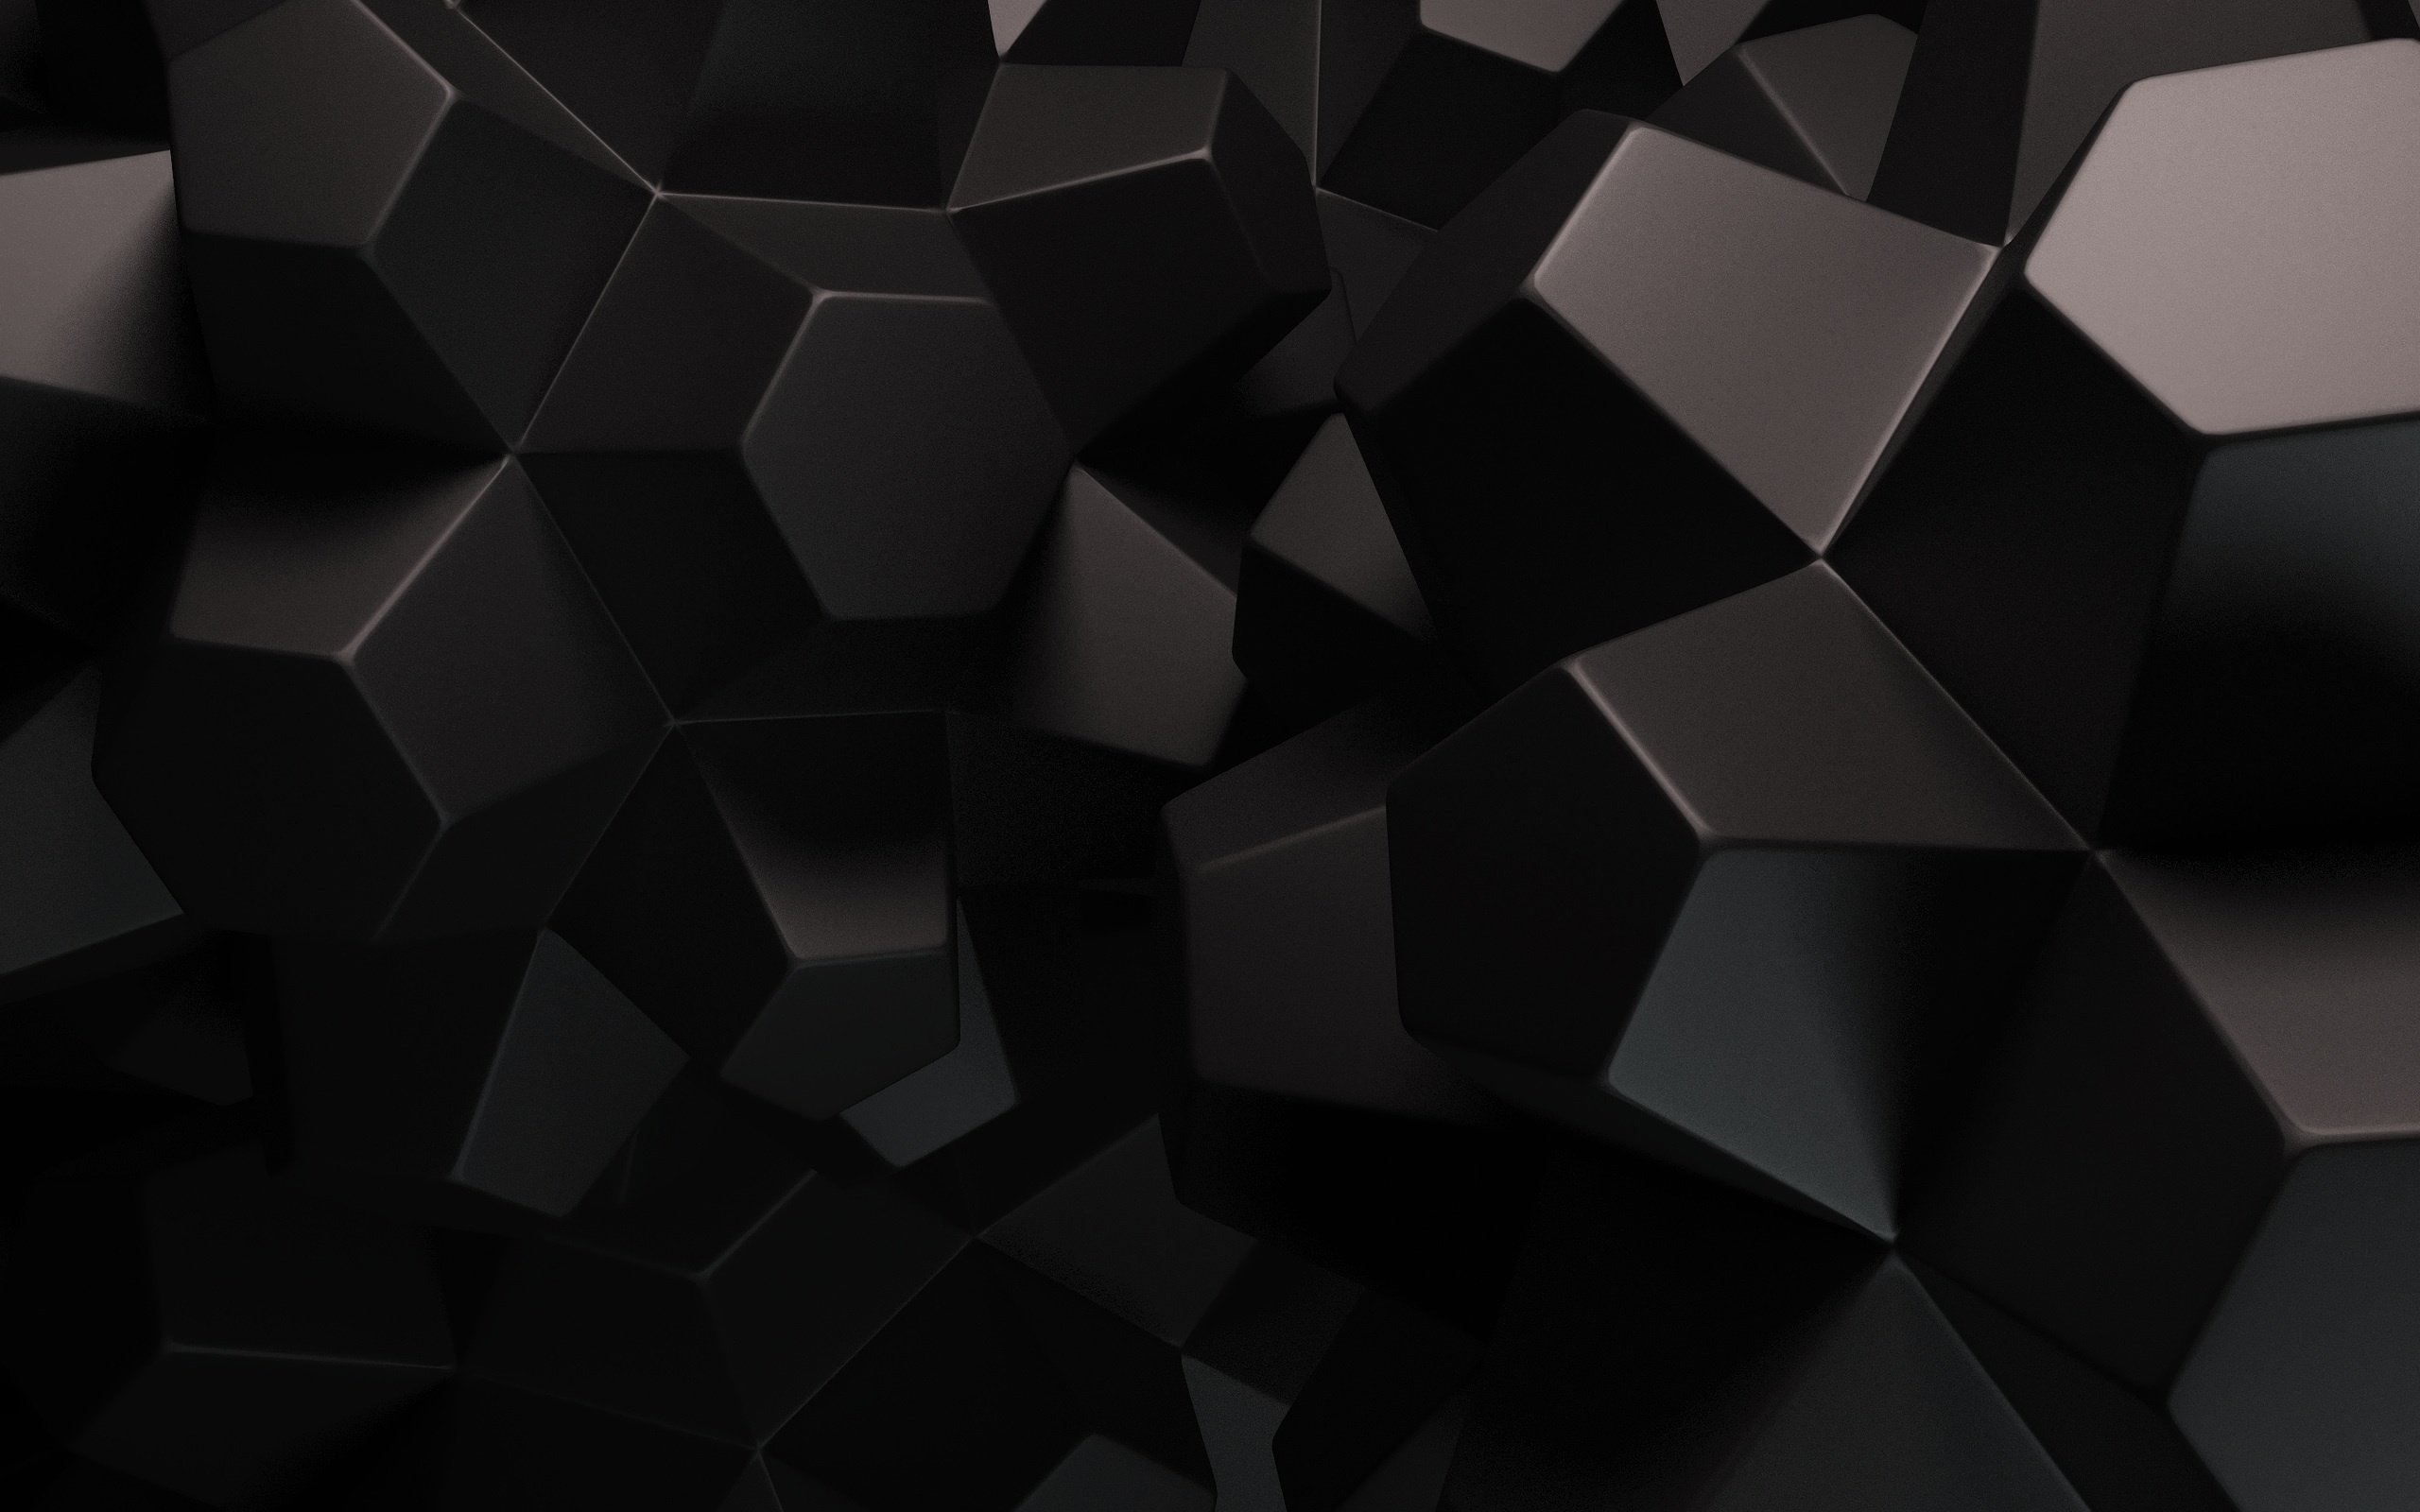 Black Abstract Shapes